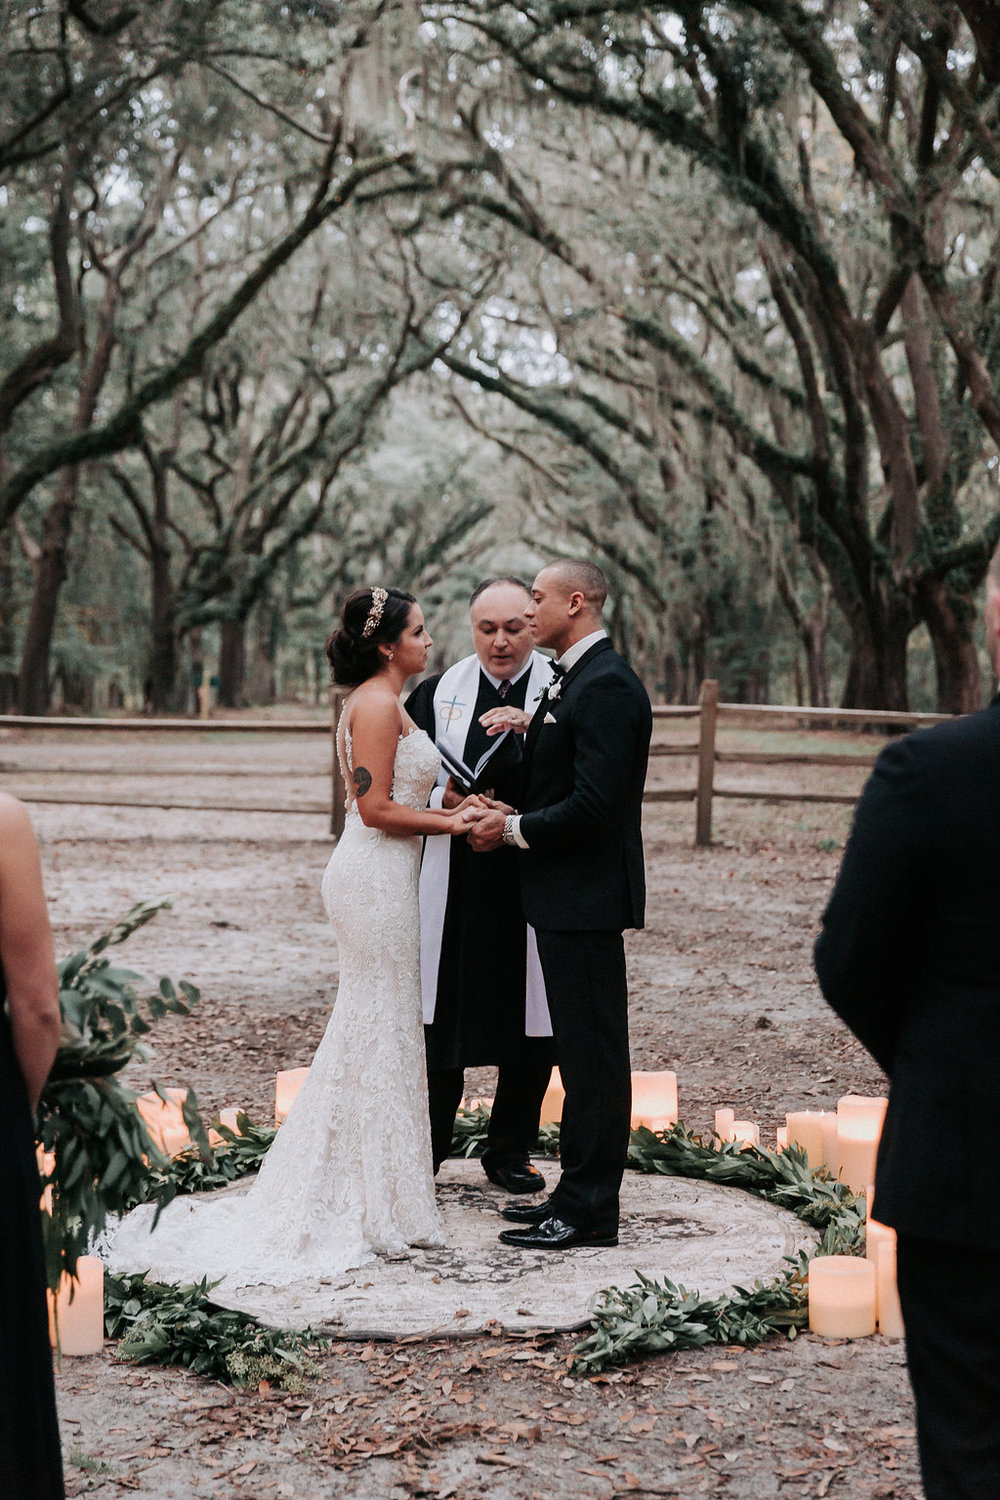 ivory-and-beau-savannah-bridal-shop-ivory-and-beau-couple-caitlin-and-tim-wormsloe-wedding-savannah-wedding-florist-house-of-ivory-photography-35.jpg